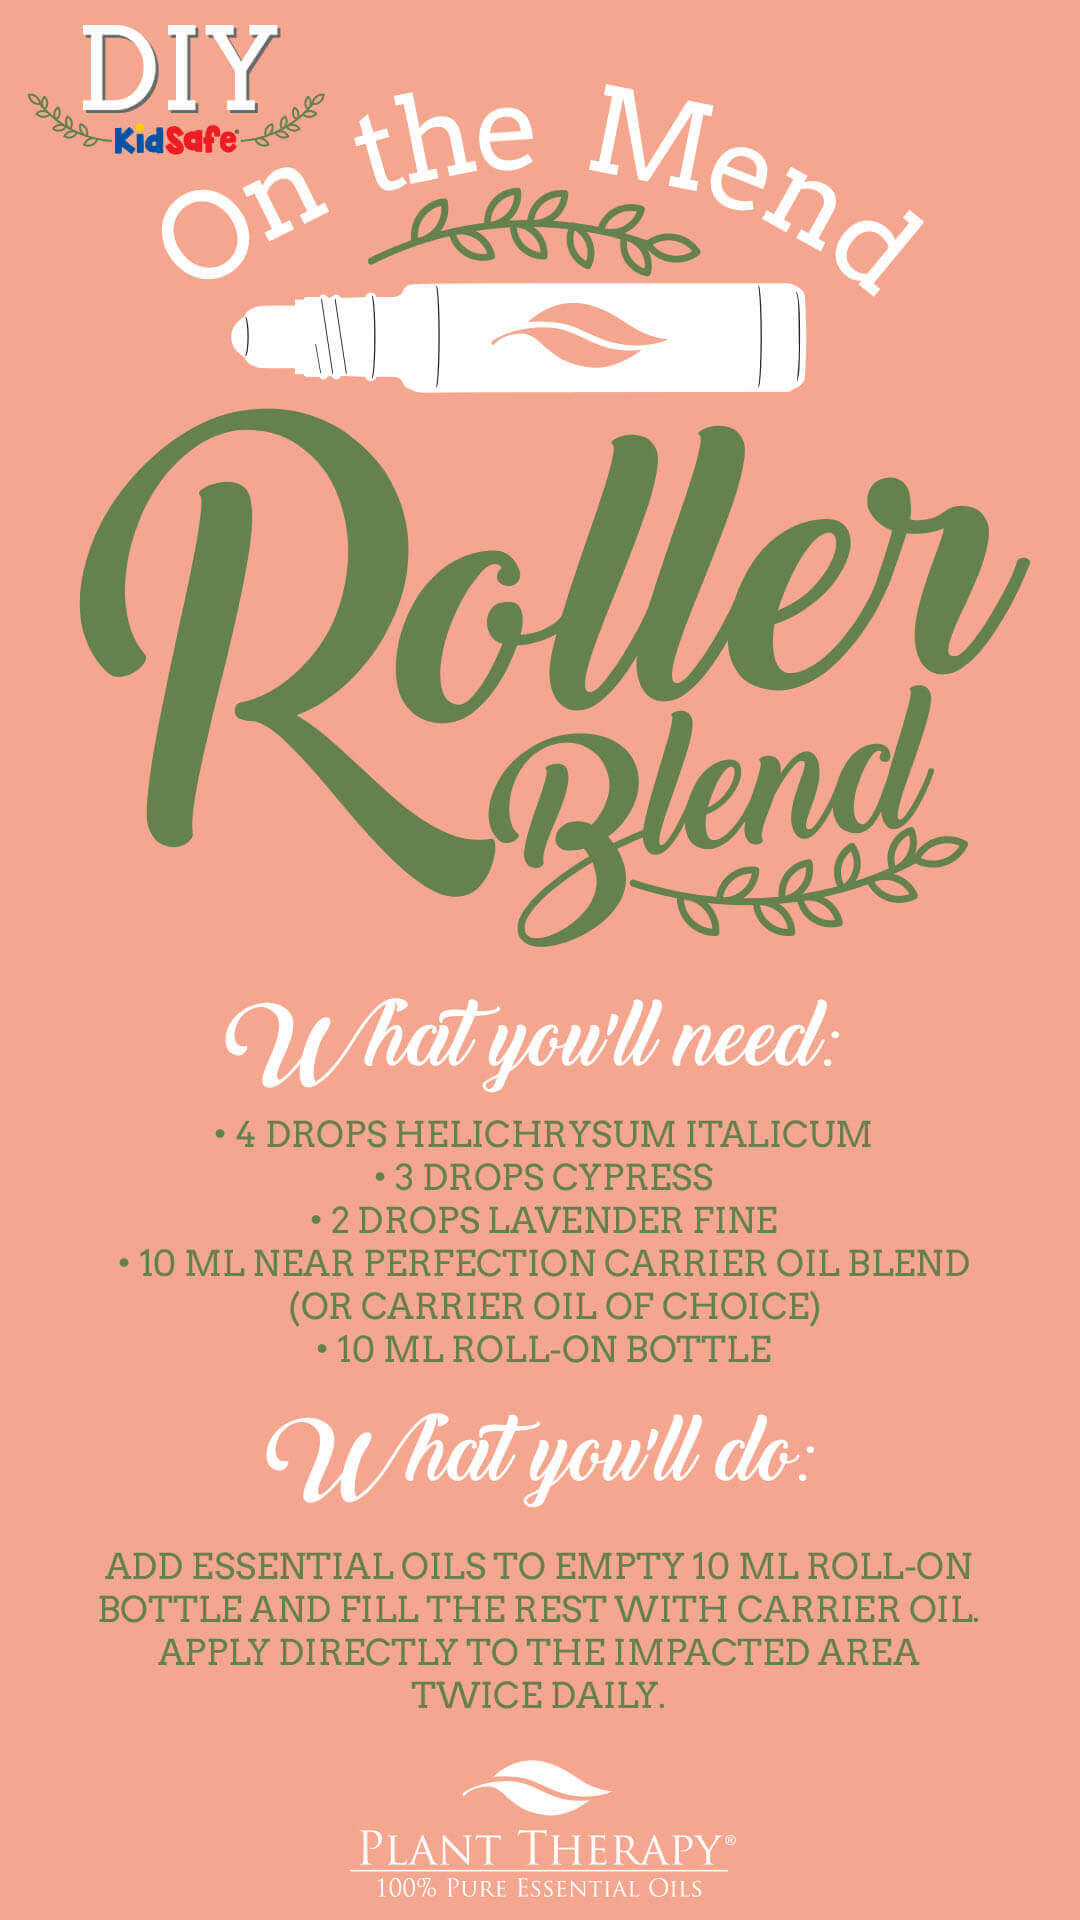 on the mend roller blend with helichrysum italicum